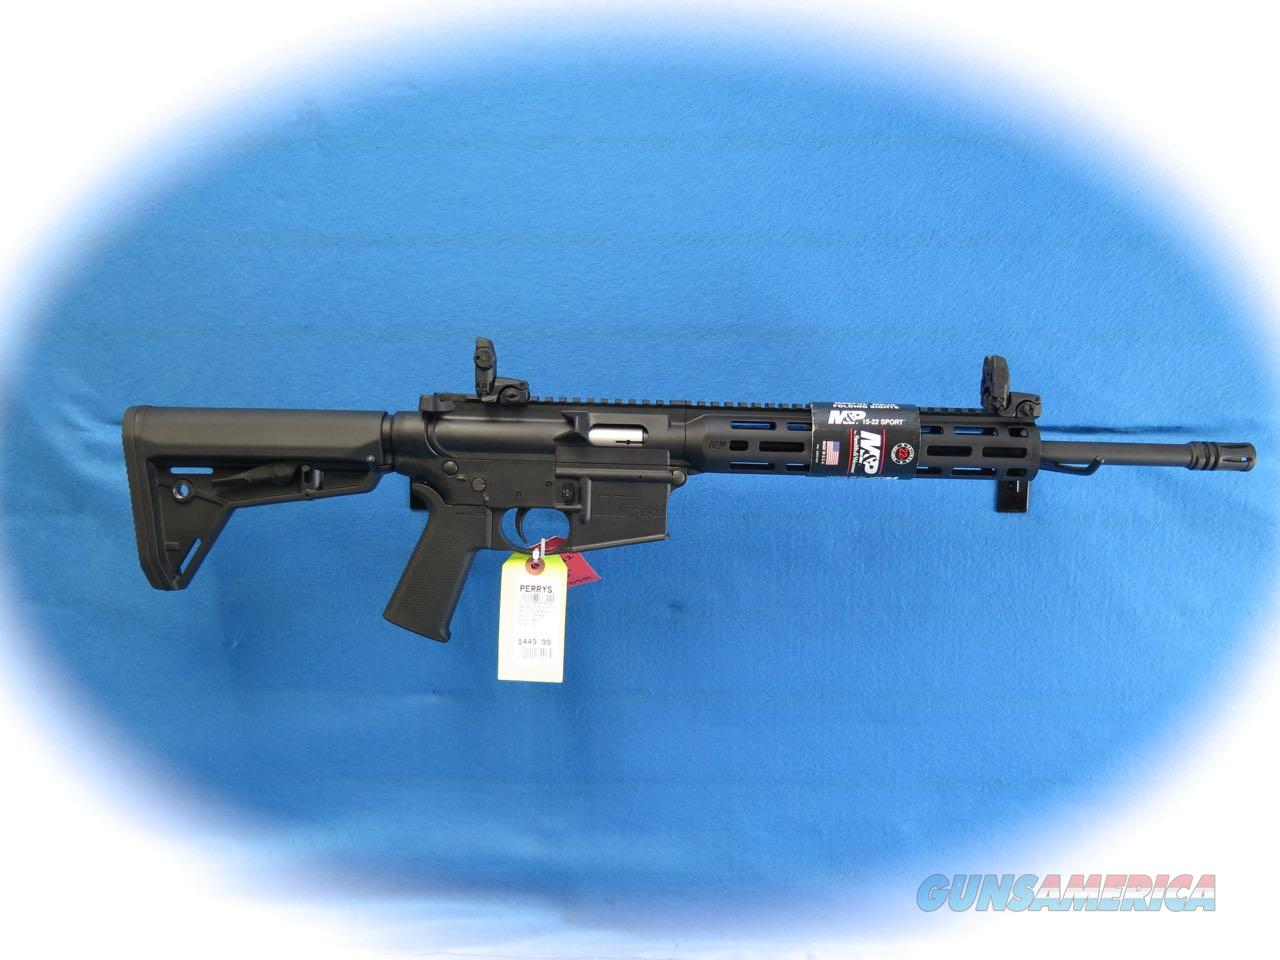 Smith & Wesson M&P 15-22 Sport MOE SL .22 LR Rifle Model 10213 **New** On Sale  Guns > Rifles > Smith & Wesson Rifles > M&P